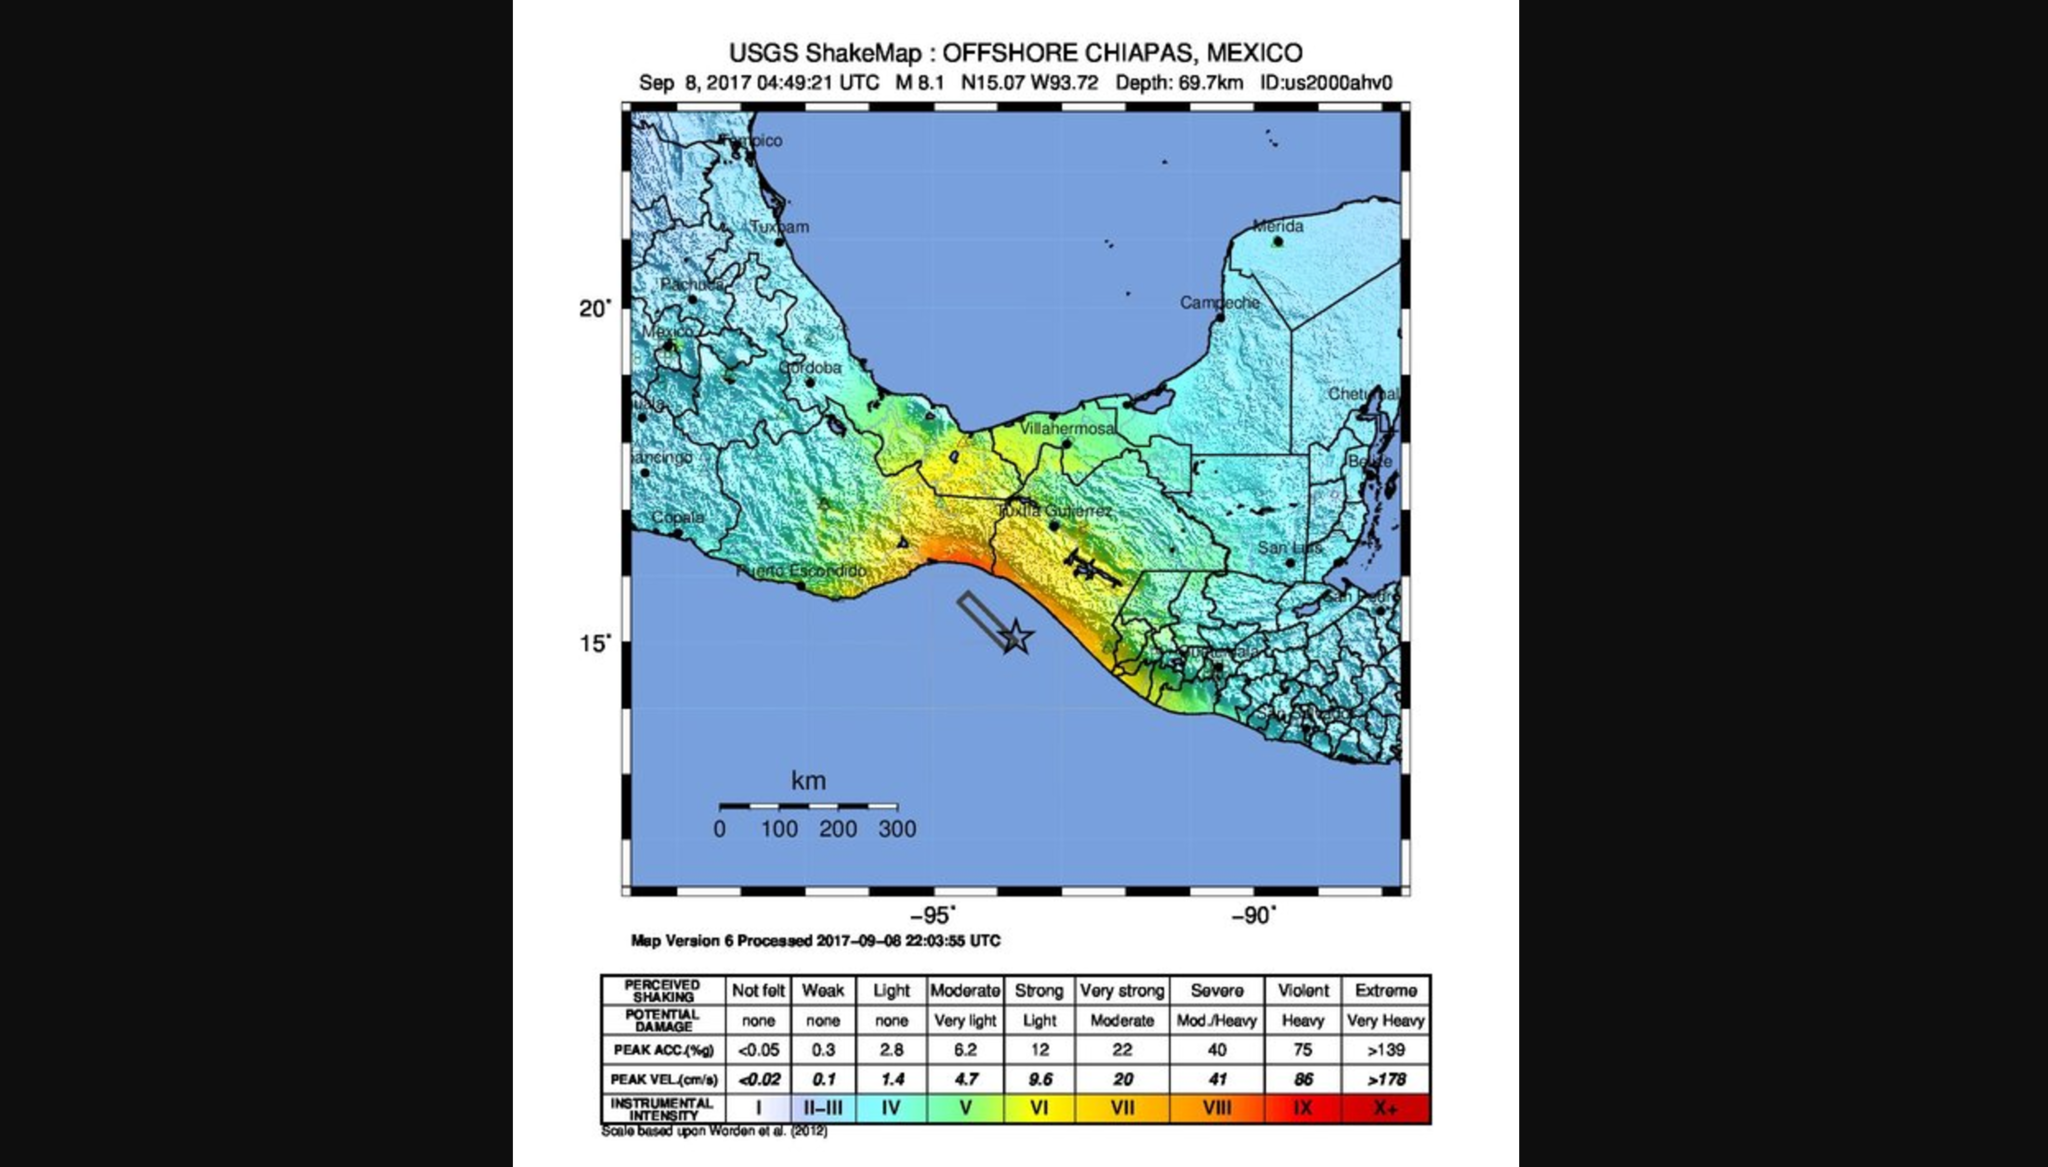 California could be hit by an 8.2 mega-earthquake, and it ... on seismic risk map, new york state seismic map, seismic category map, ibc seismic classification map, us seismicity map, us wind map, us ground snow load map, us soils map, global seismic hazard map, level 4 seismic zones map, us frost depth map, california seismic hazard zone map, us heating degree days map, ibc zip code map, us rainfall intensity map, seismic activity map, us altitude map, gsa seismic map, 10 fema zones map, earthquake map,